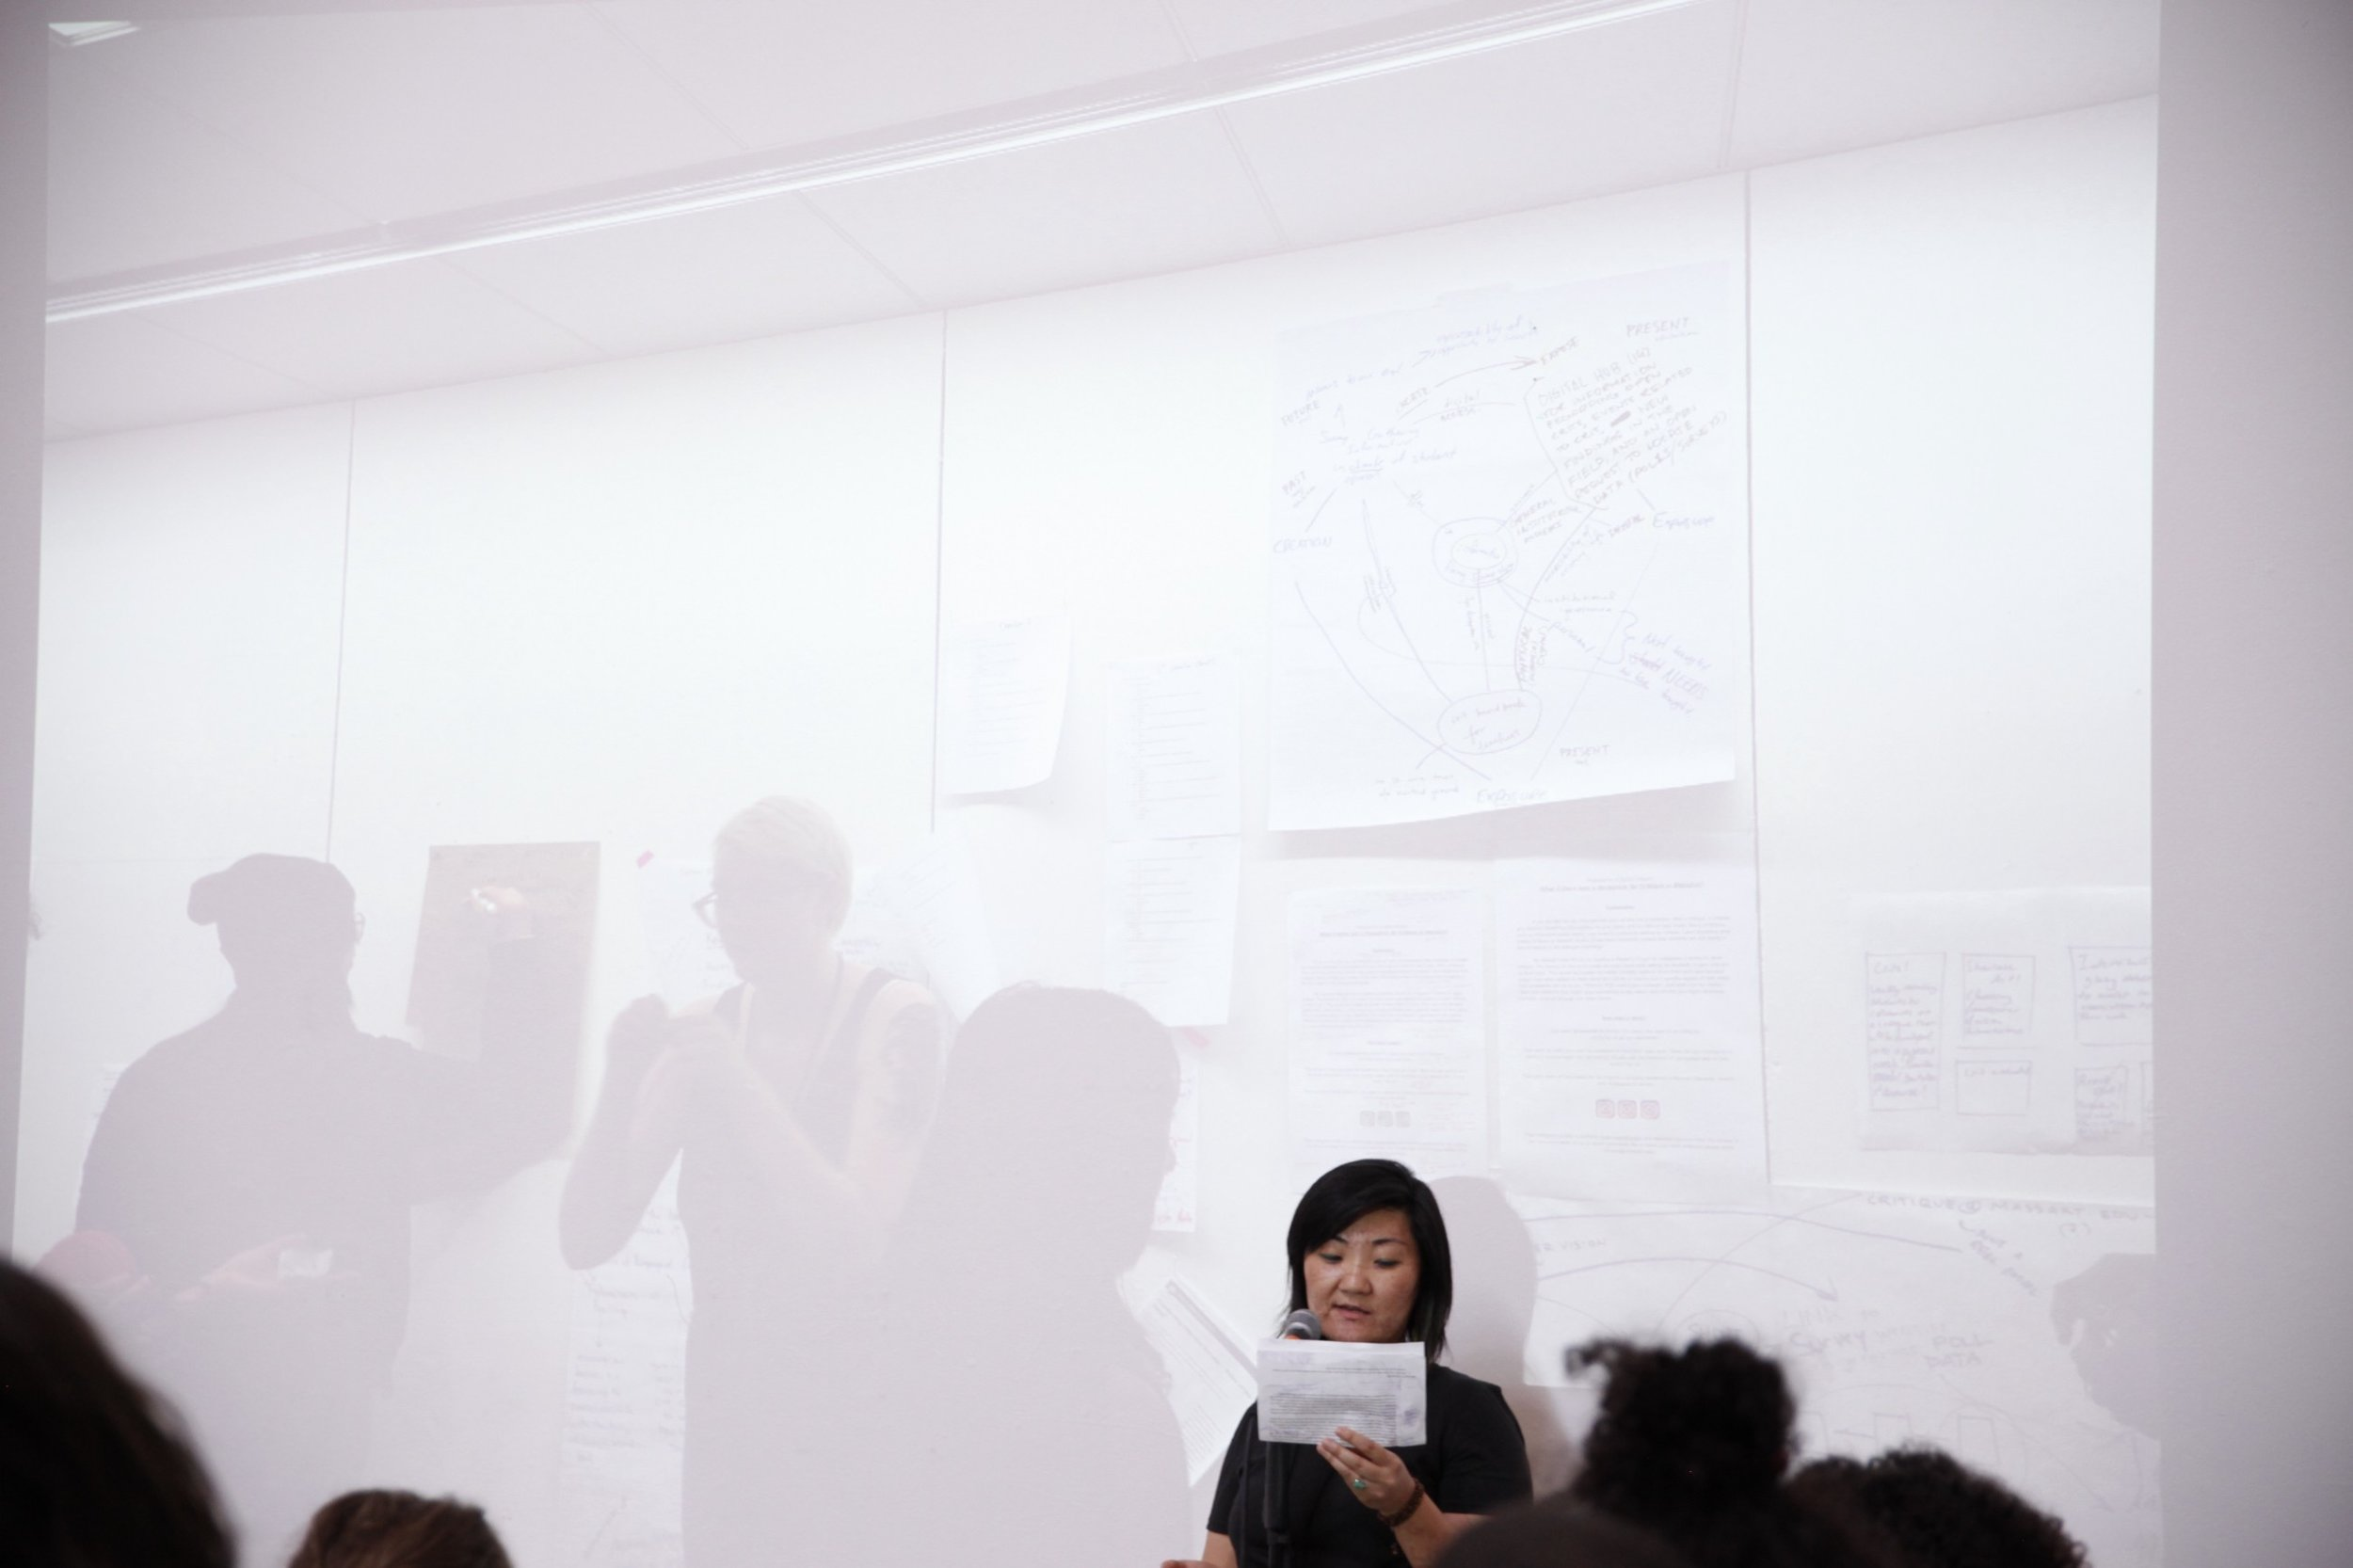 """Billie Lee, Assistant Professor at Hartford Art School, speaks during """"Retooling Critique,"""" presented alongside students, faculty, and administration from Massachusetts College of Art and Design."""